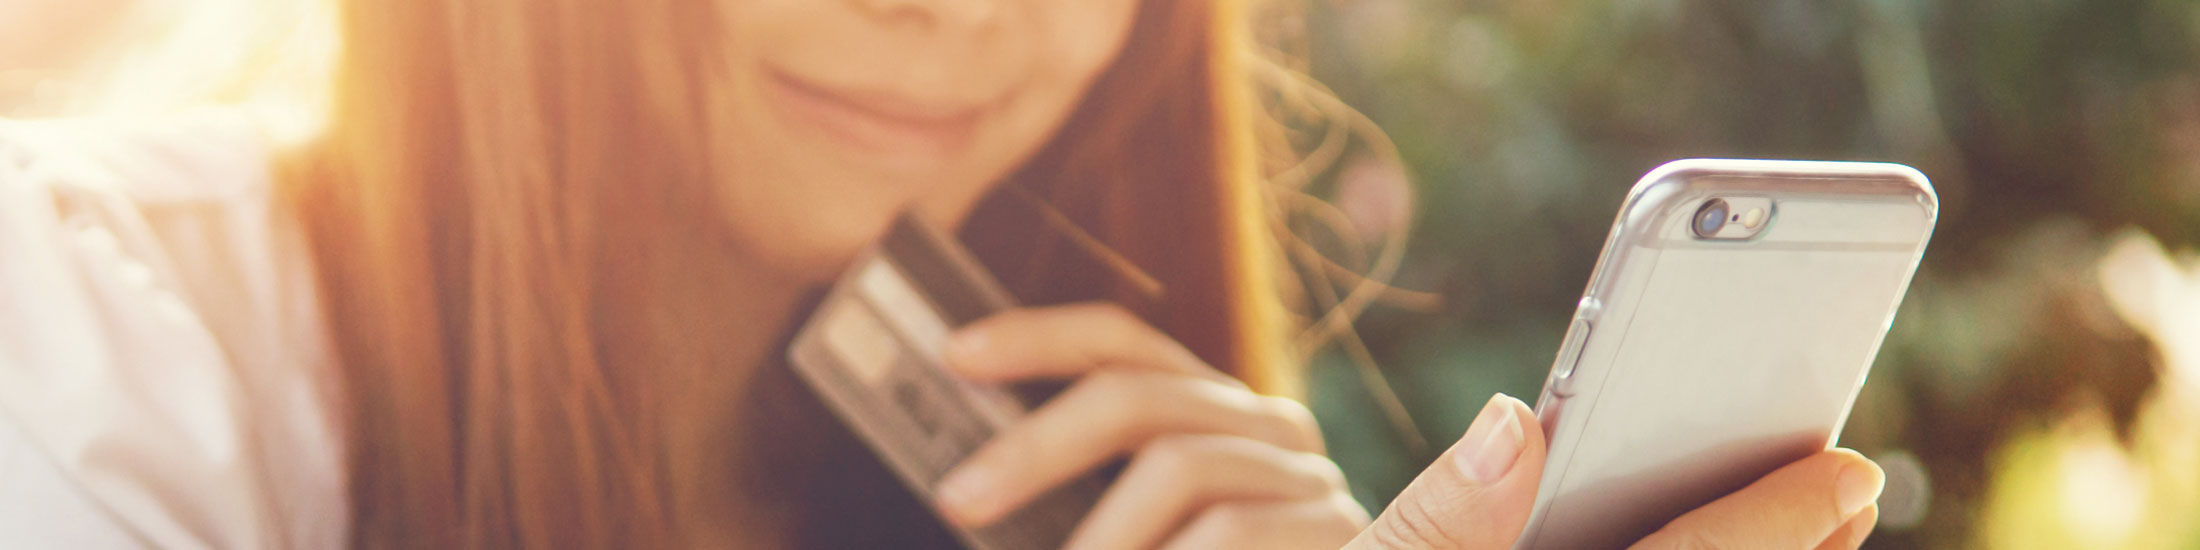 Fed: Remote Payments Rapidly Gain on In-Person Card Payments